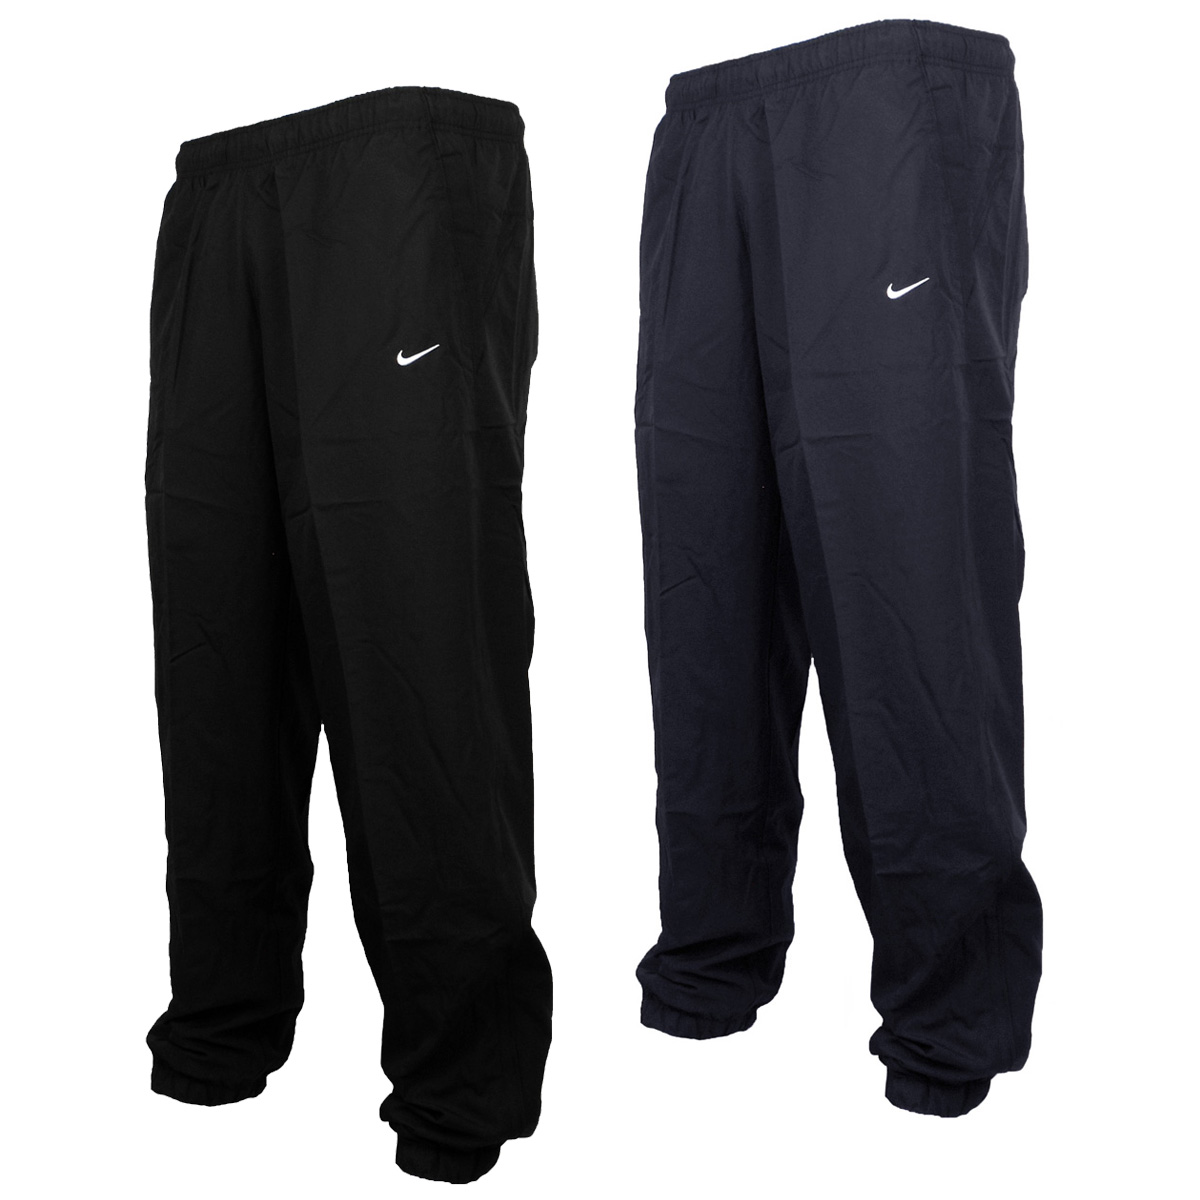 Mens-Boys-Nike-Tracksuit-Track-Pant-Woven-Pants-Cuffed-Training-Bottoms